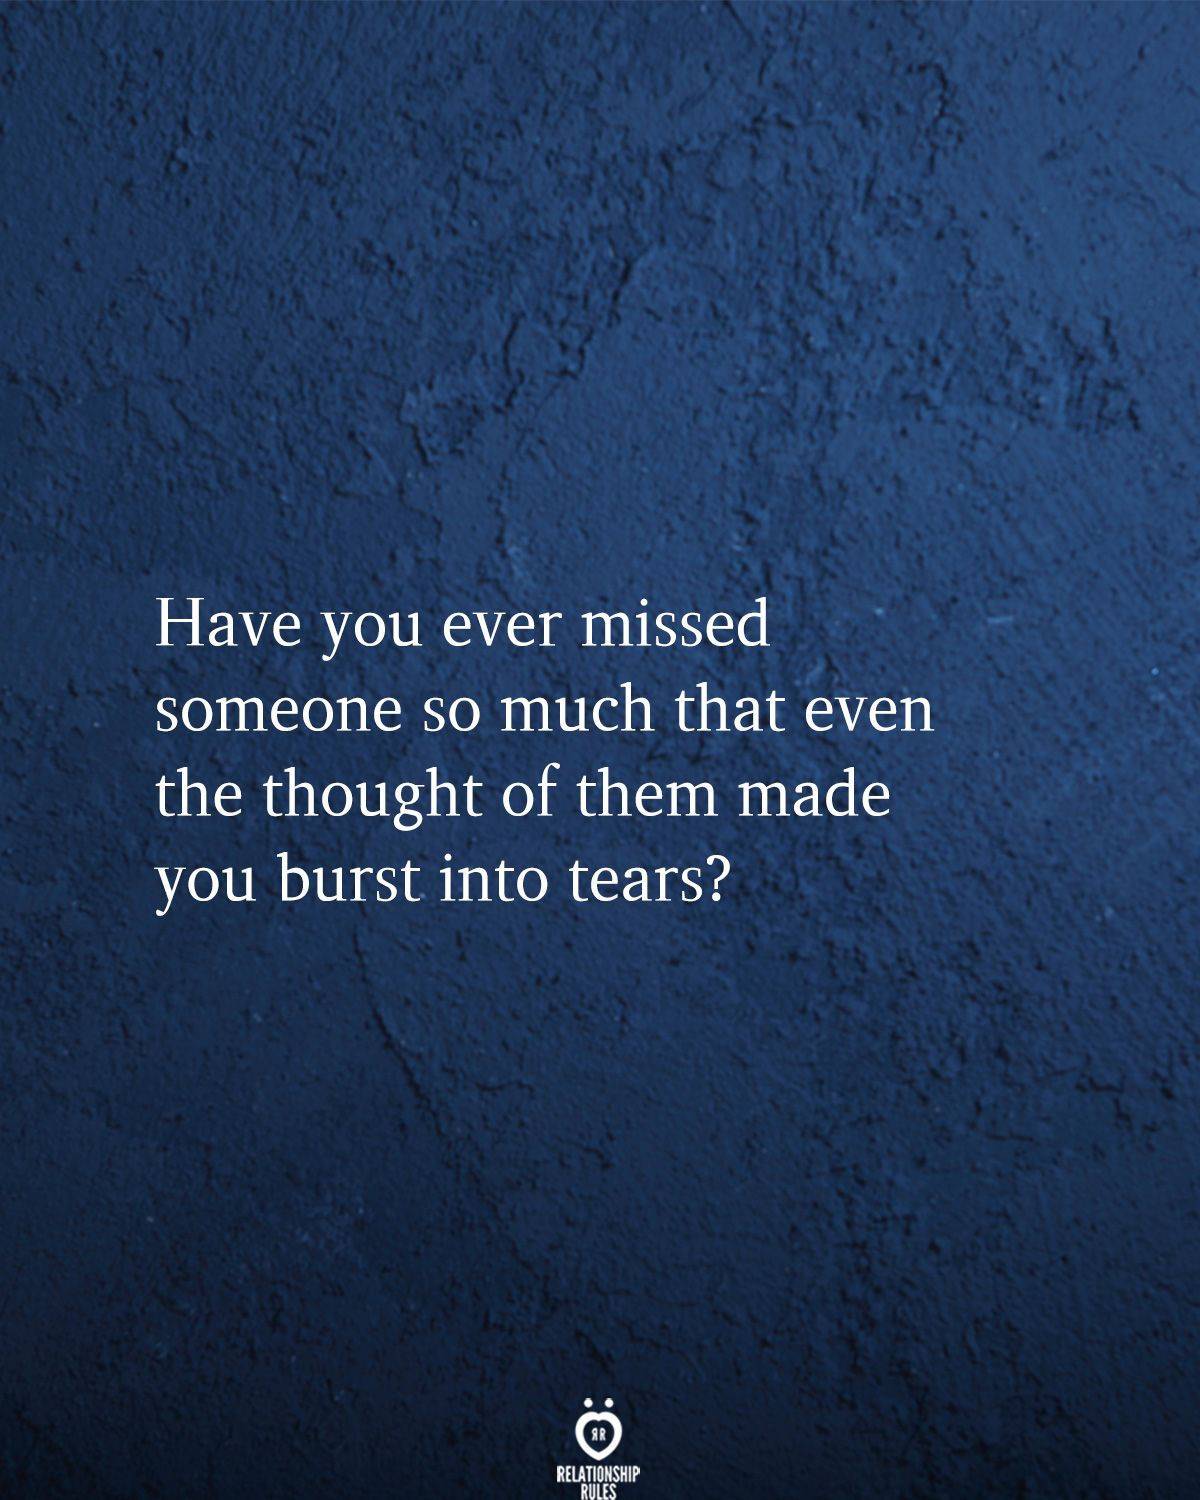 Have You Ever Missed Someone So Much Hurt Quotes Missing Quotes Heartbroken Quotes